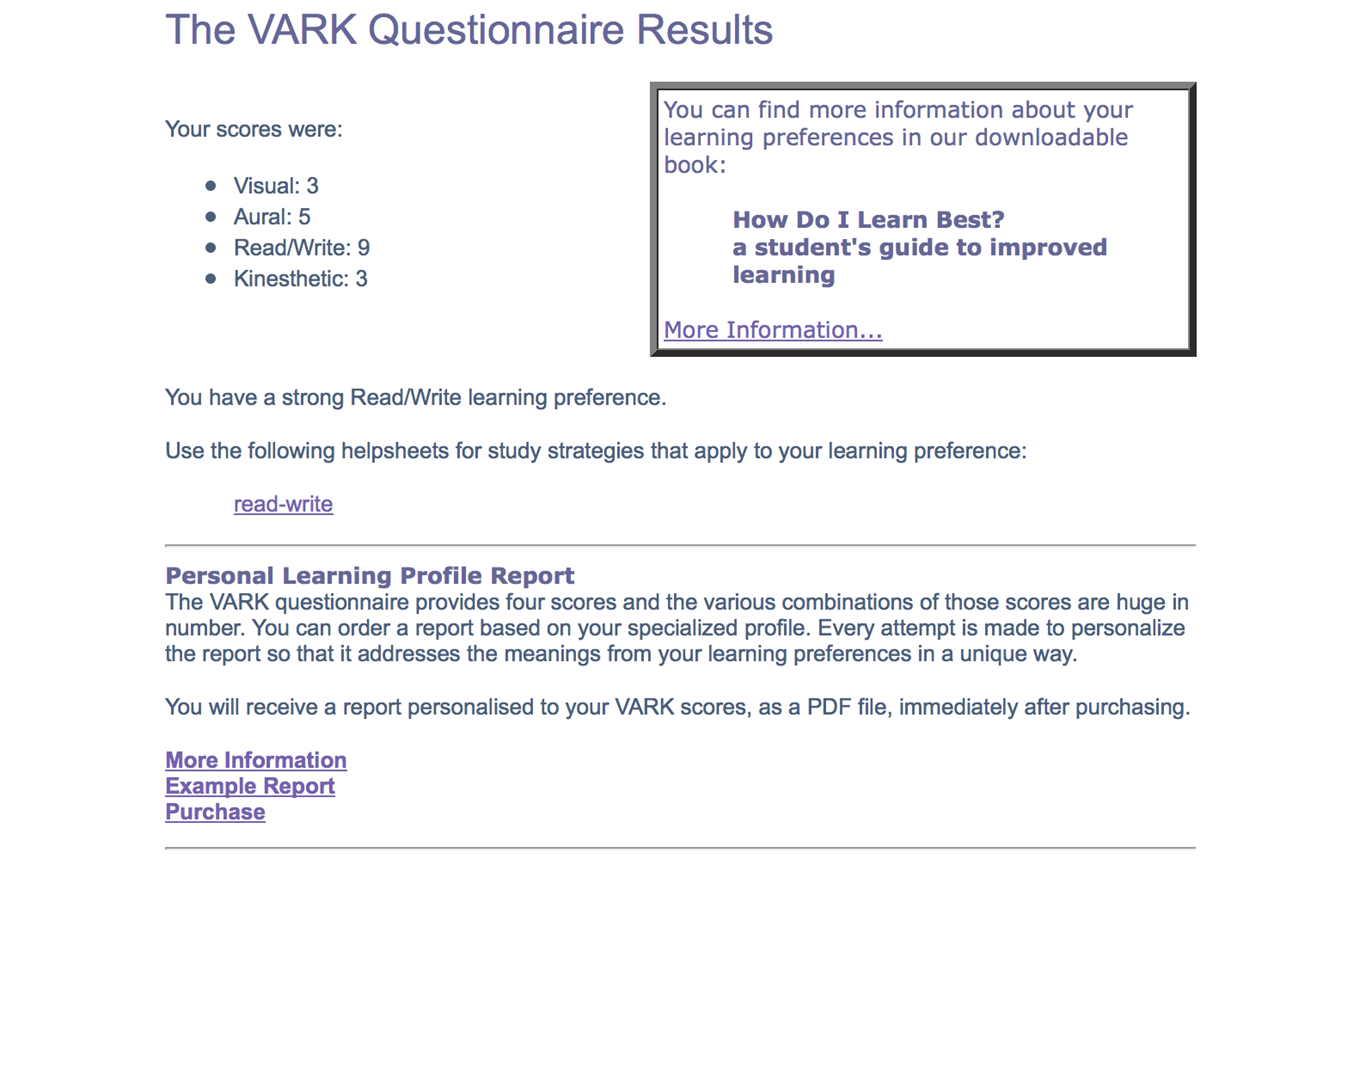 vark questionnaire results